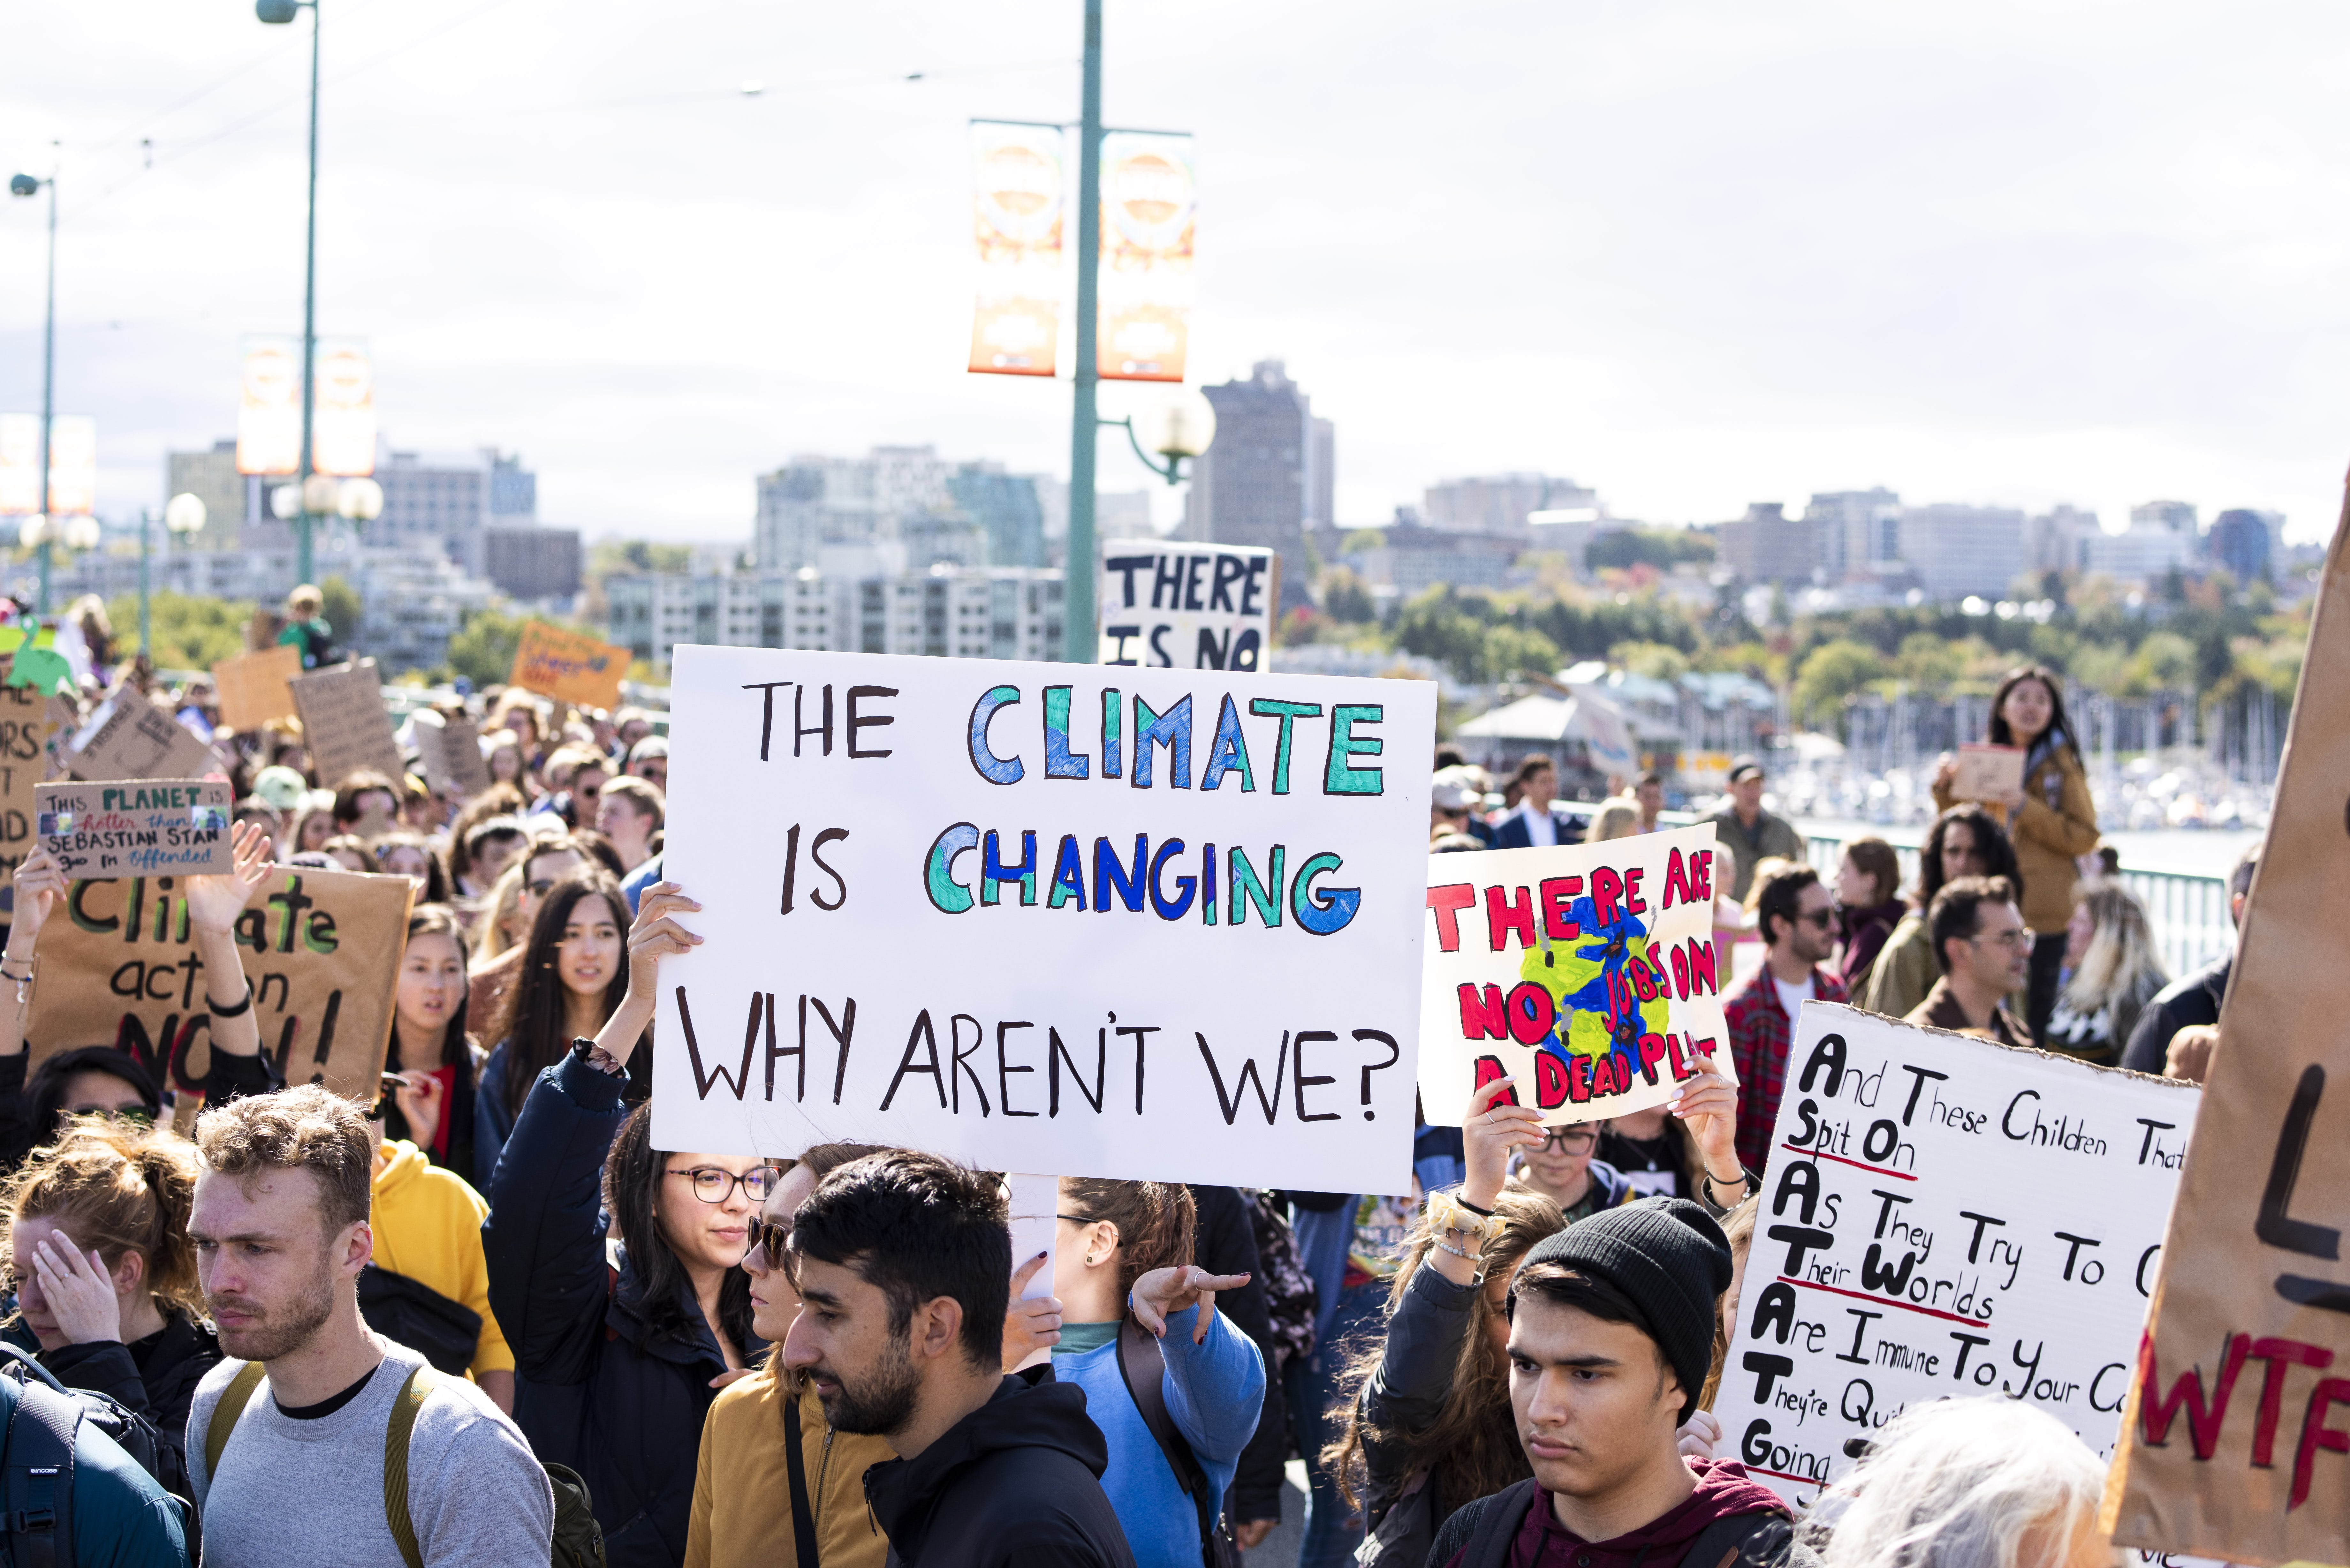 Thousands of people participate in the 2019 Climate Strike across the Cambie Bridge, Vancouver.